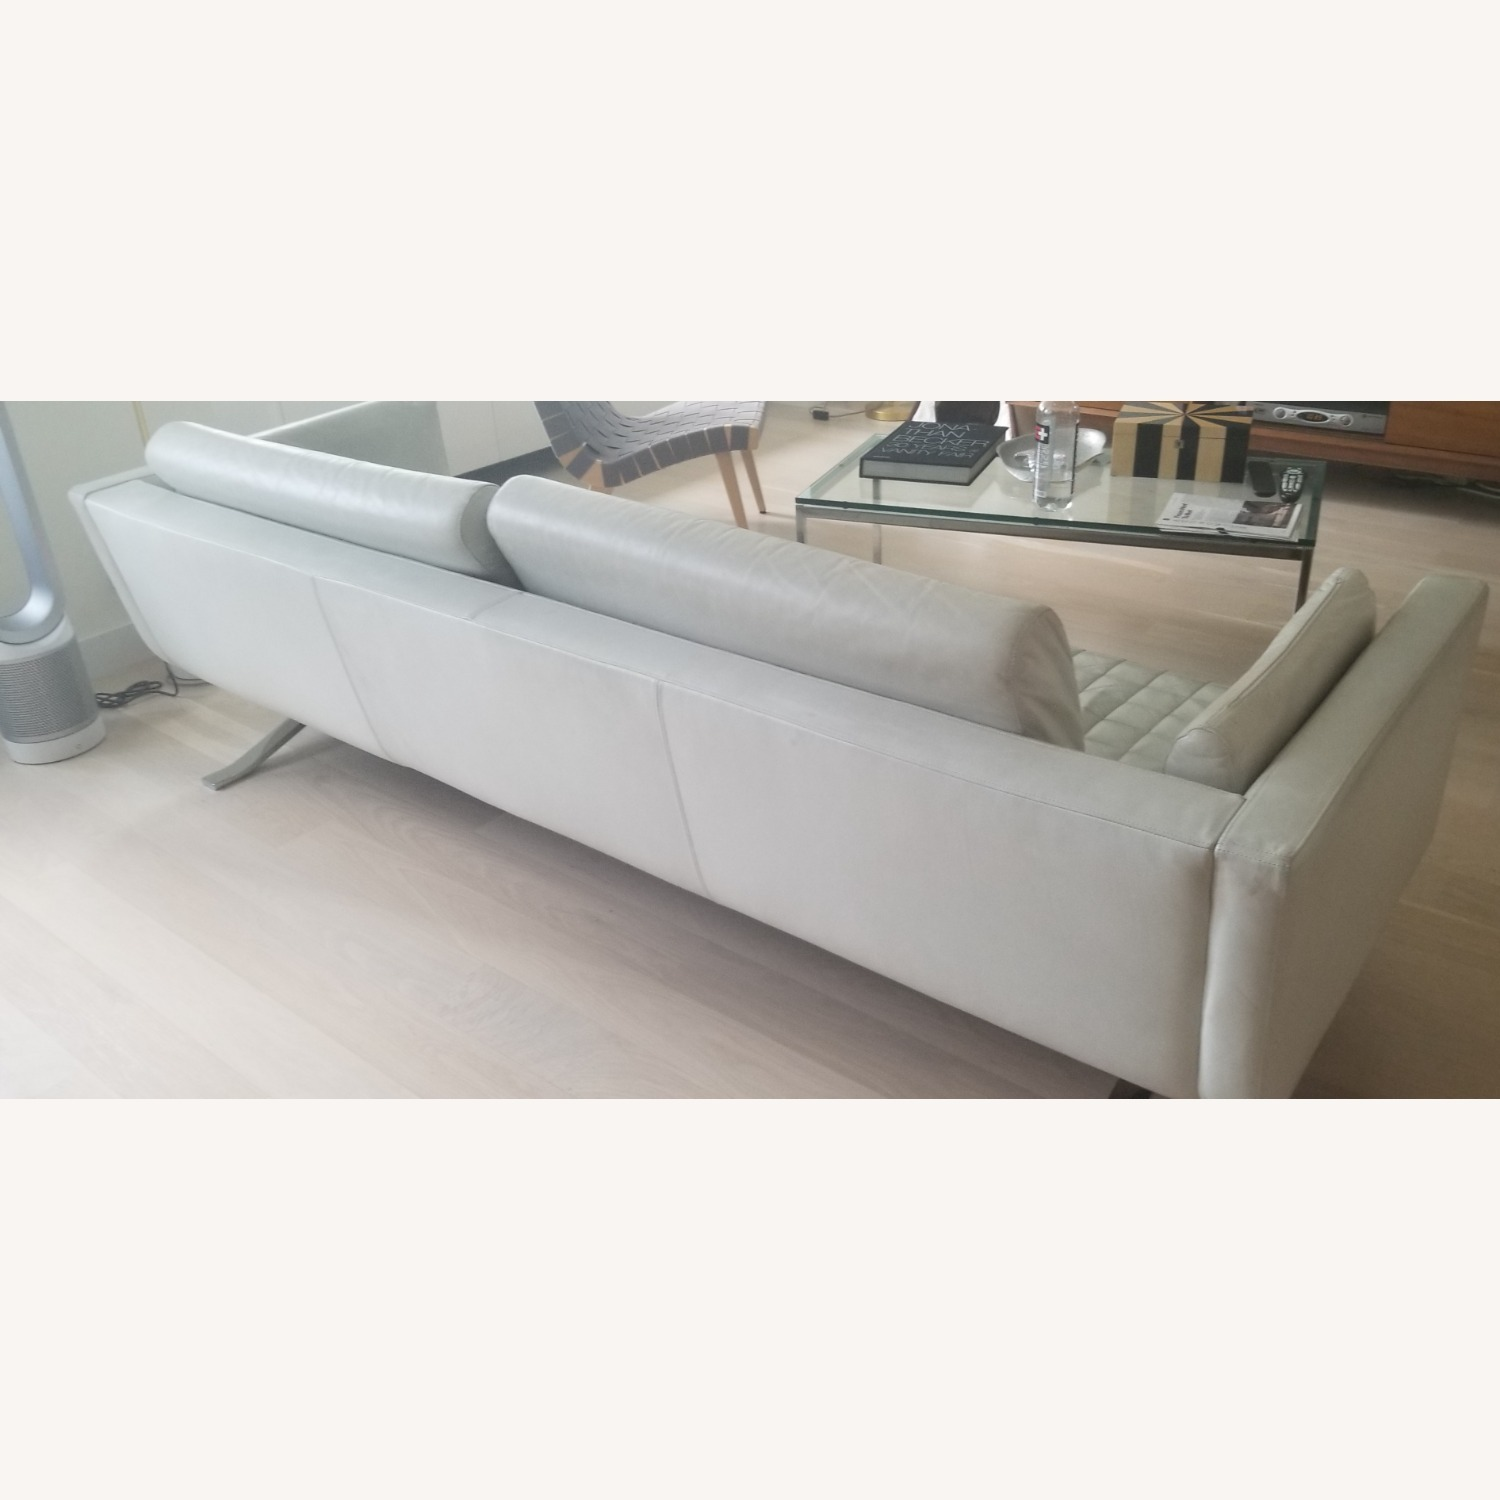 Palau White Leather Couch - image-2